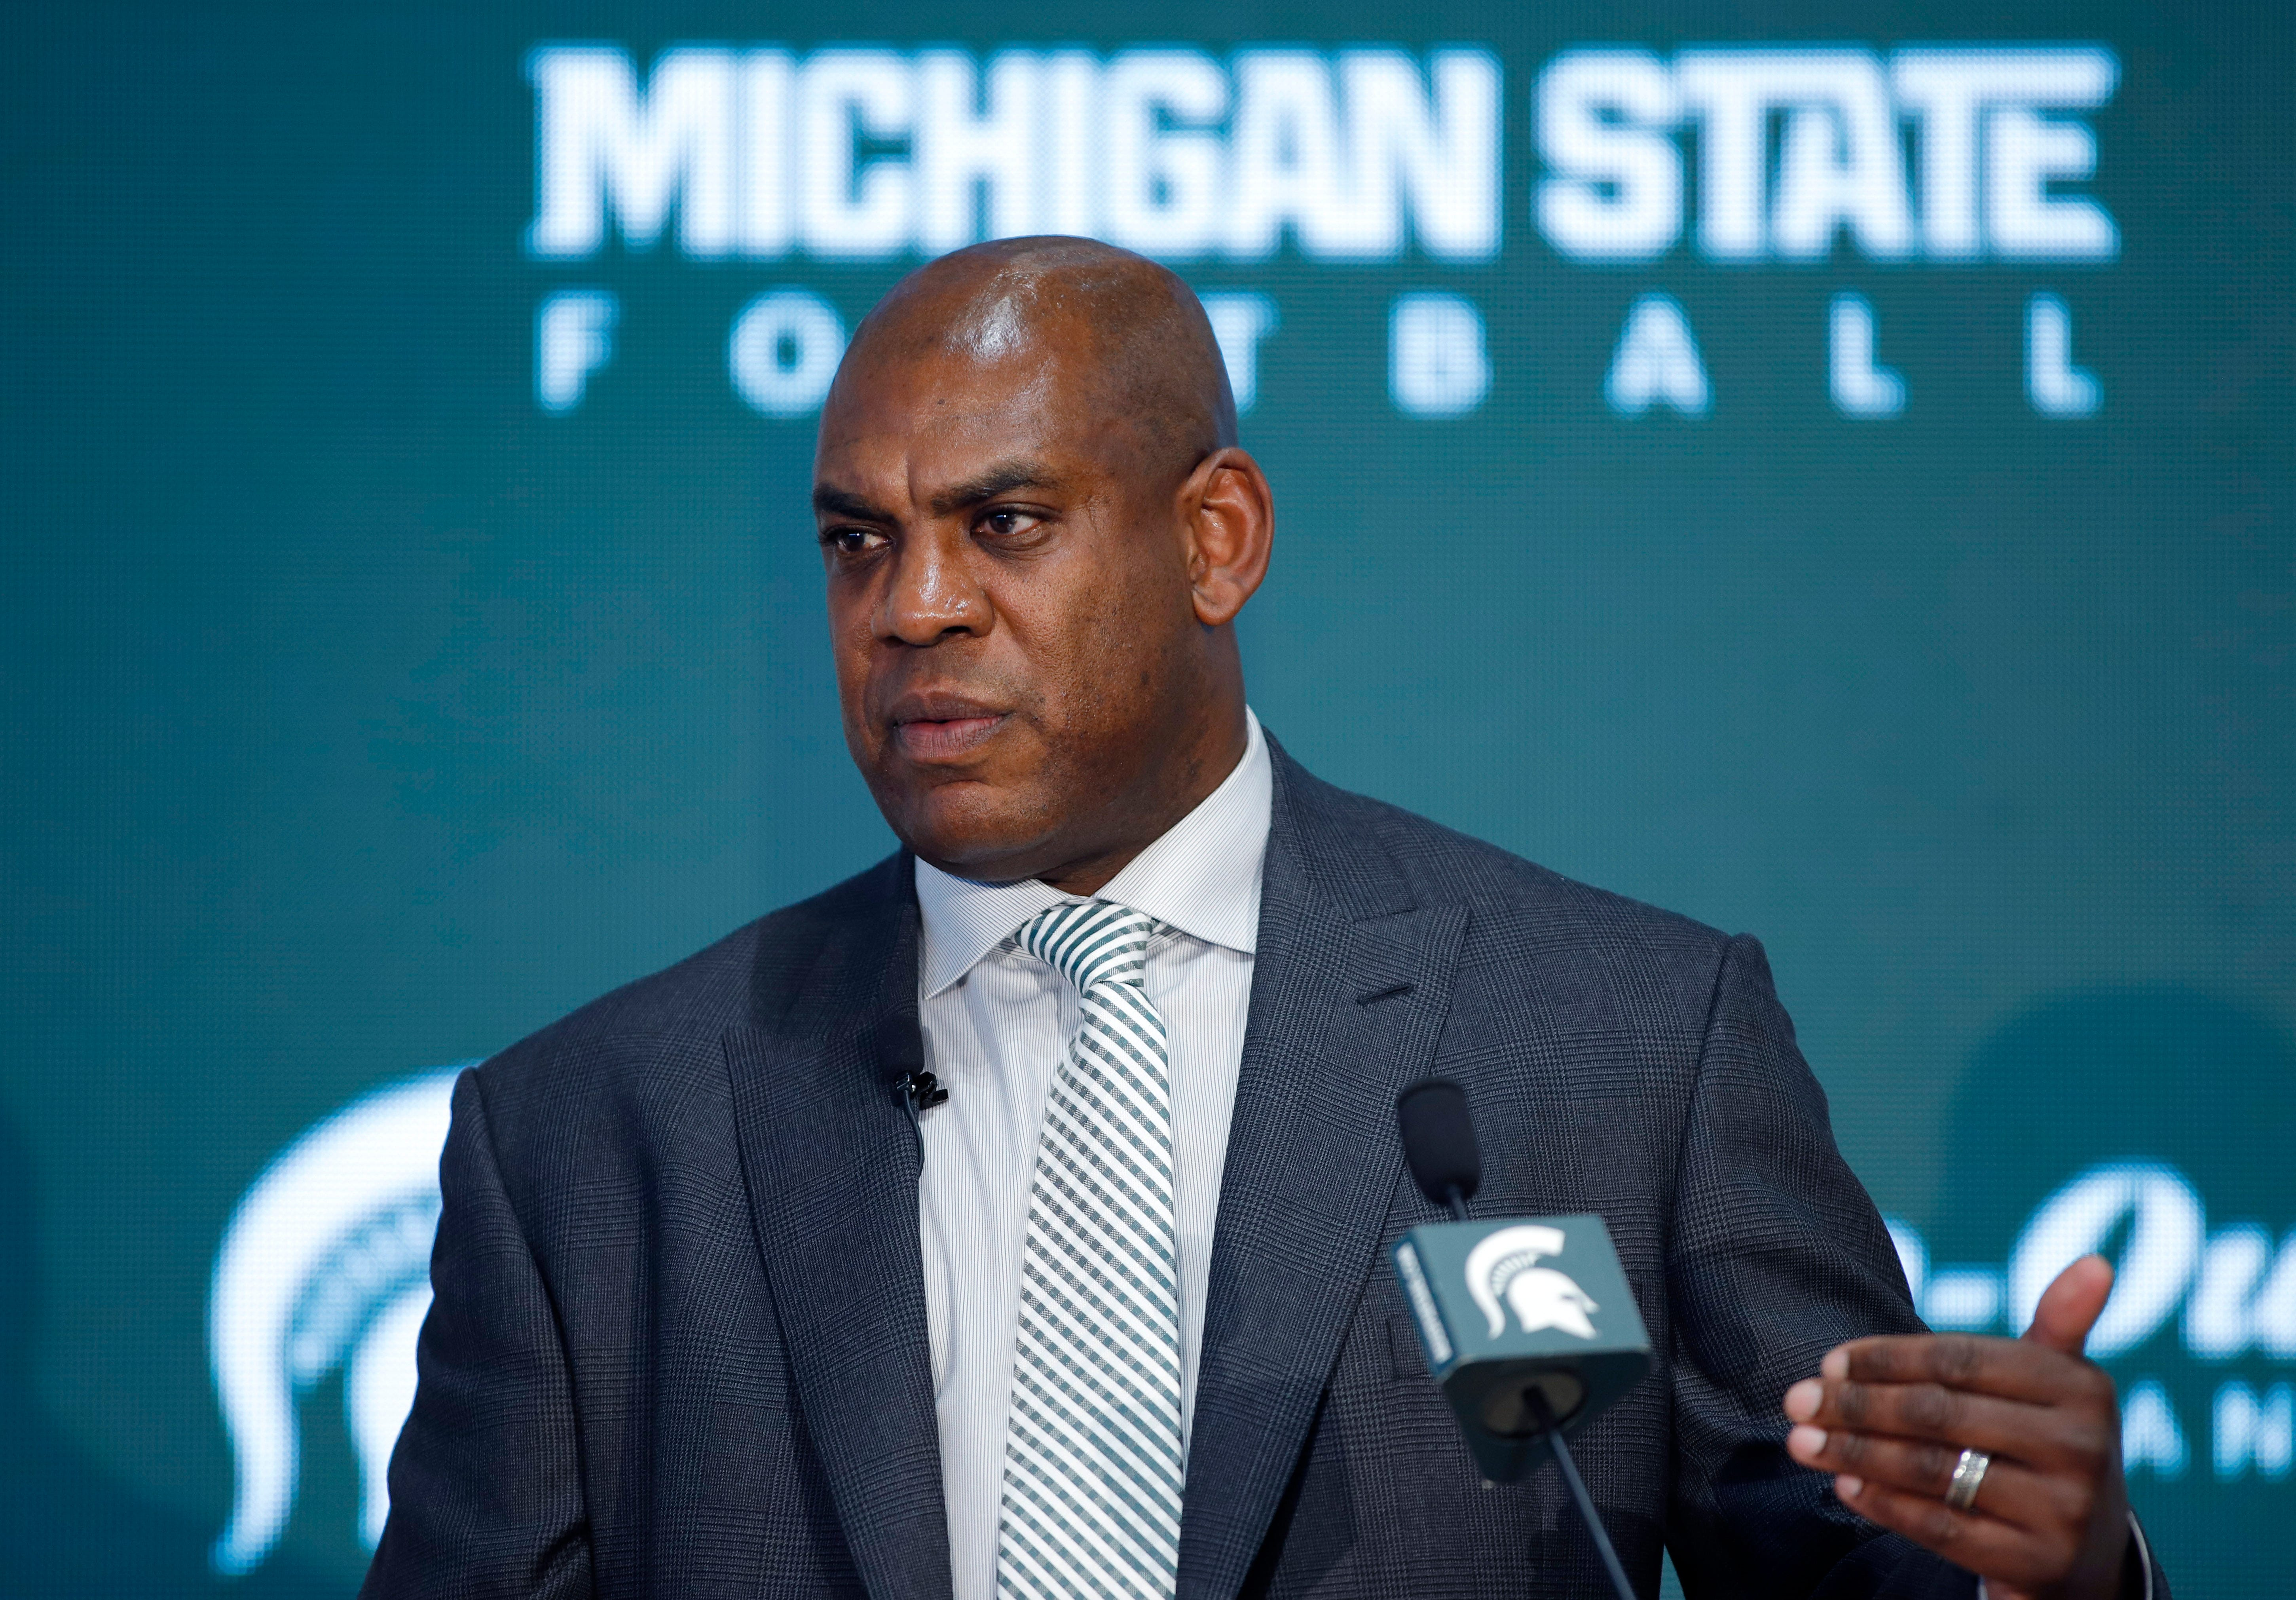 Podcast: Michigan State's Mel Tucker on getting ready for October and Week 4 breakdown